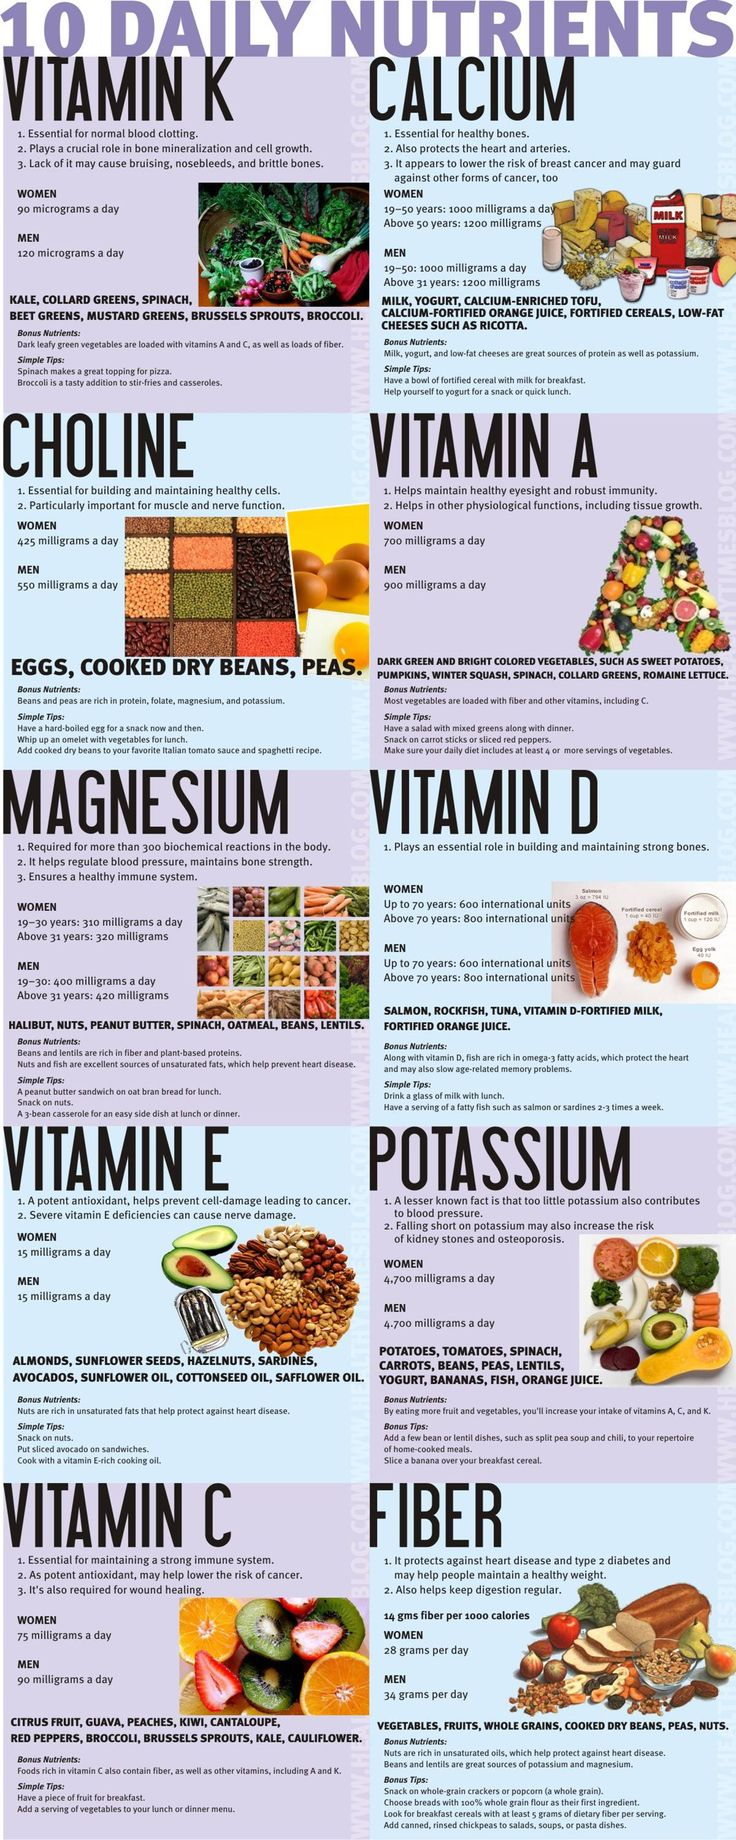 10 Daily Nutrients.